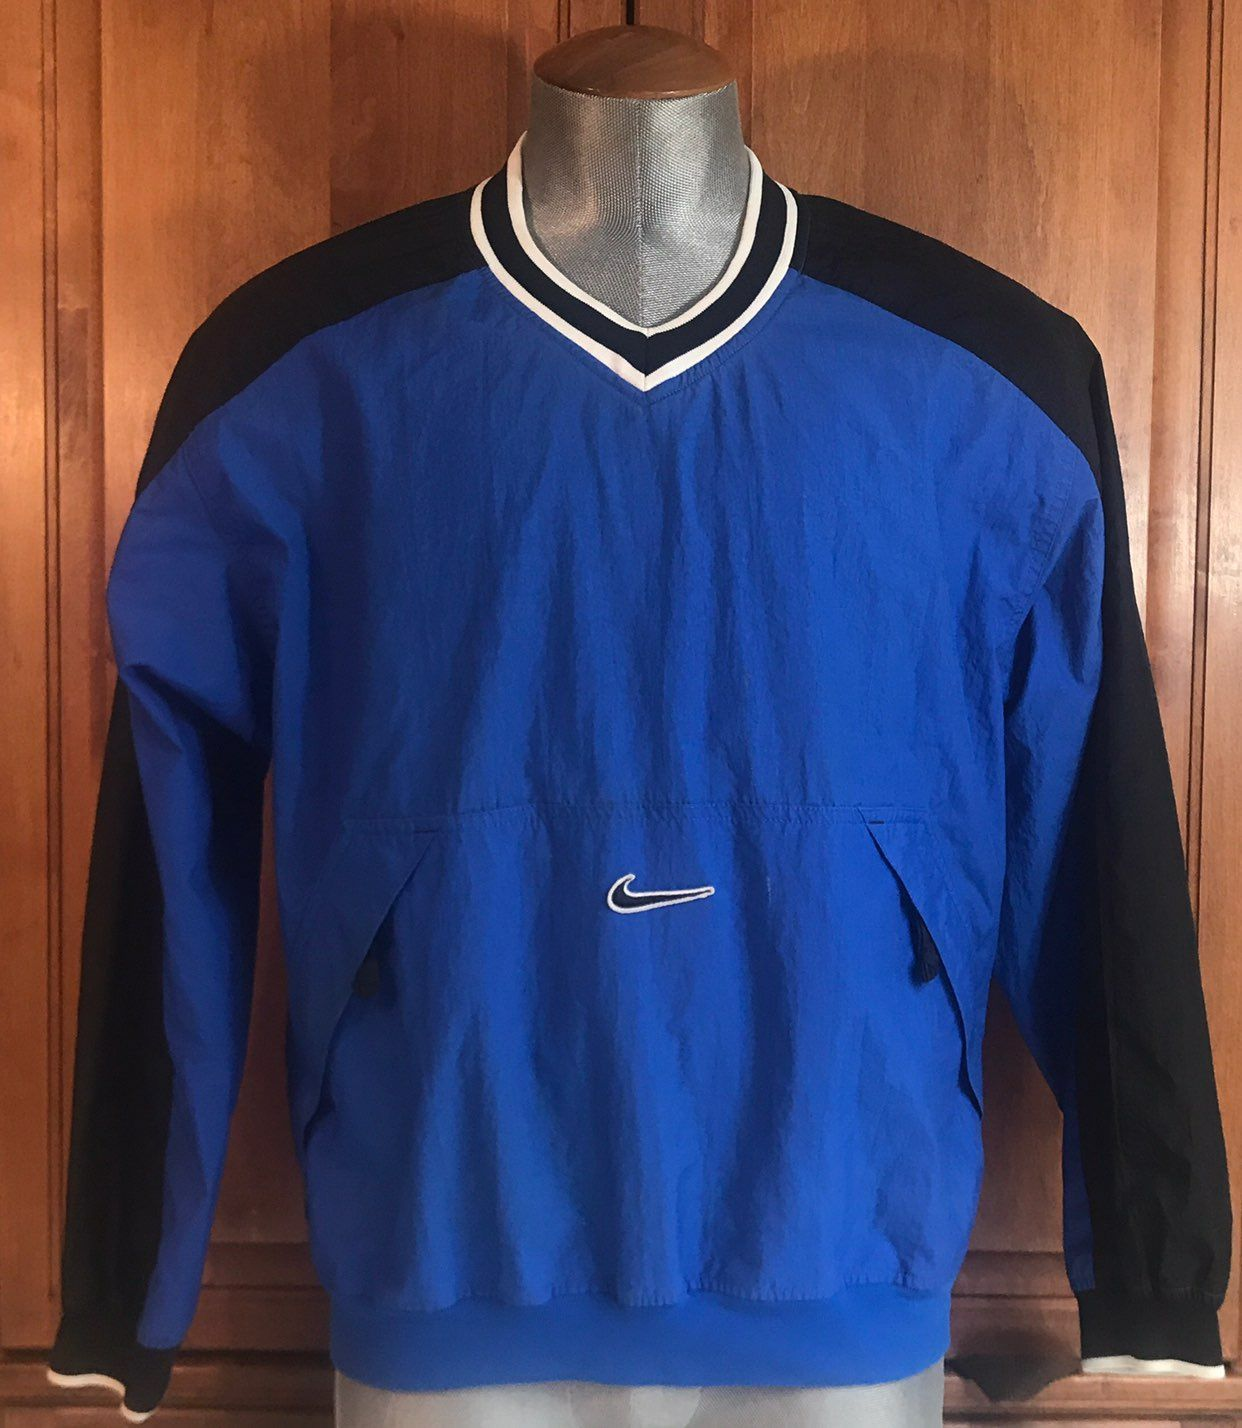 Vintage Nike Athletic Pullover Jacket - Mercari: BUY & SELL THINGS ...